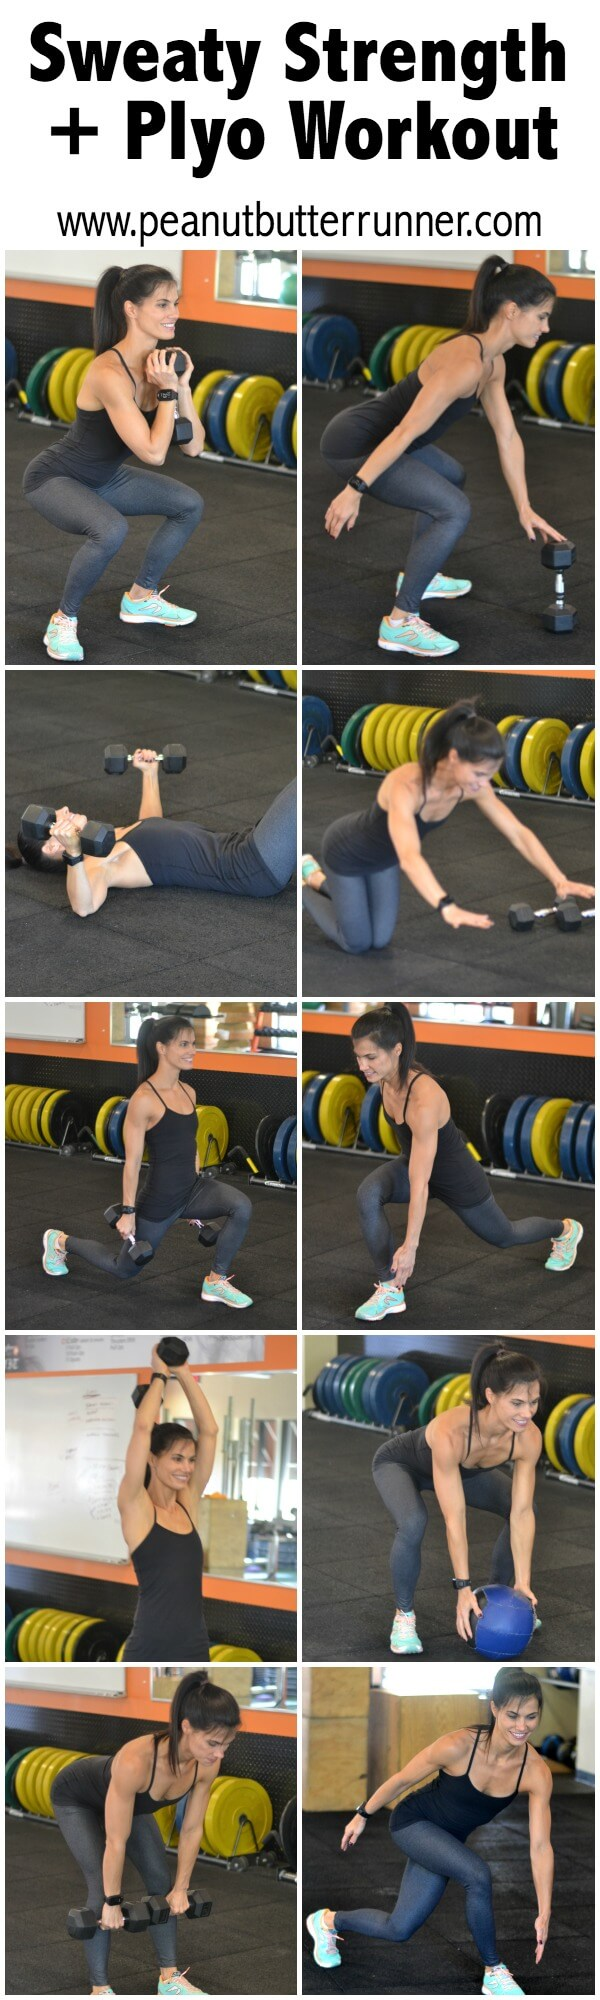 This Sweaty Strength + Plyo workout alternates strength and plyometric exercises for a workout that will challenge your muscular endurance, keep your heart rate up and help you build speed and power.